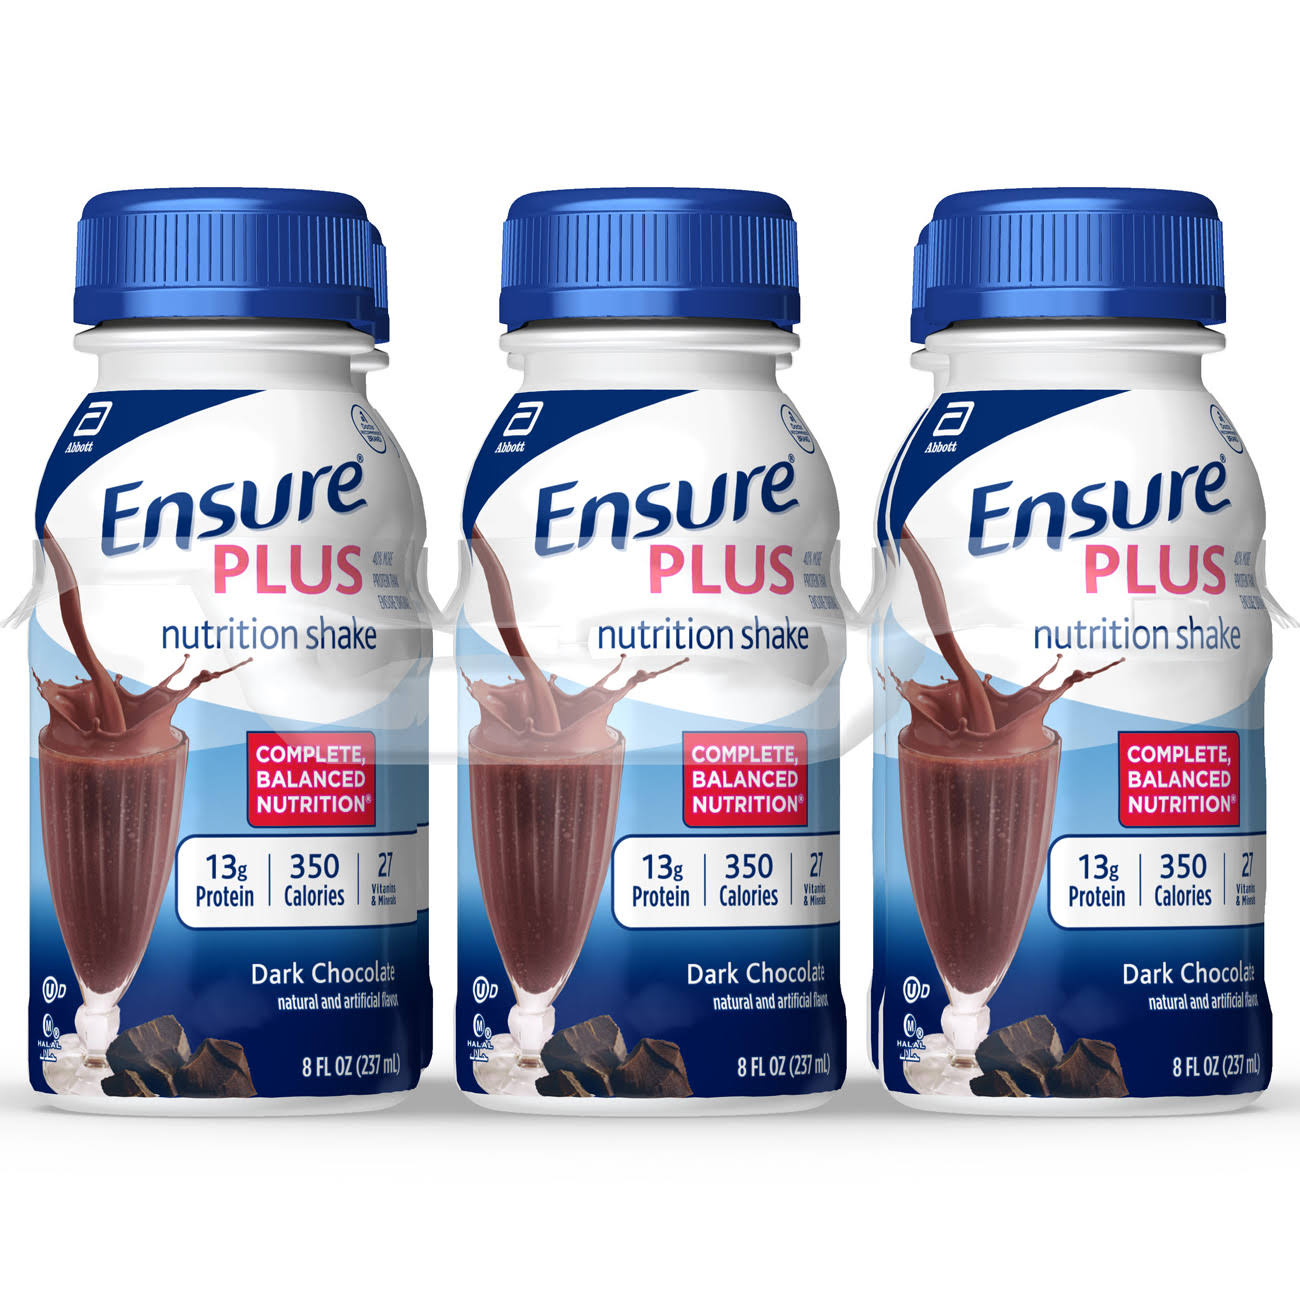 Abbott Ensure Plus Dark Chocolate Nutrition Shake - 6 x 8 oz Pack